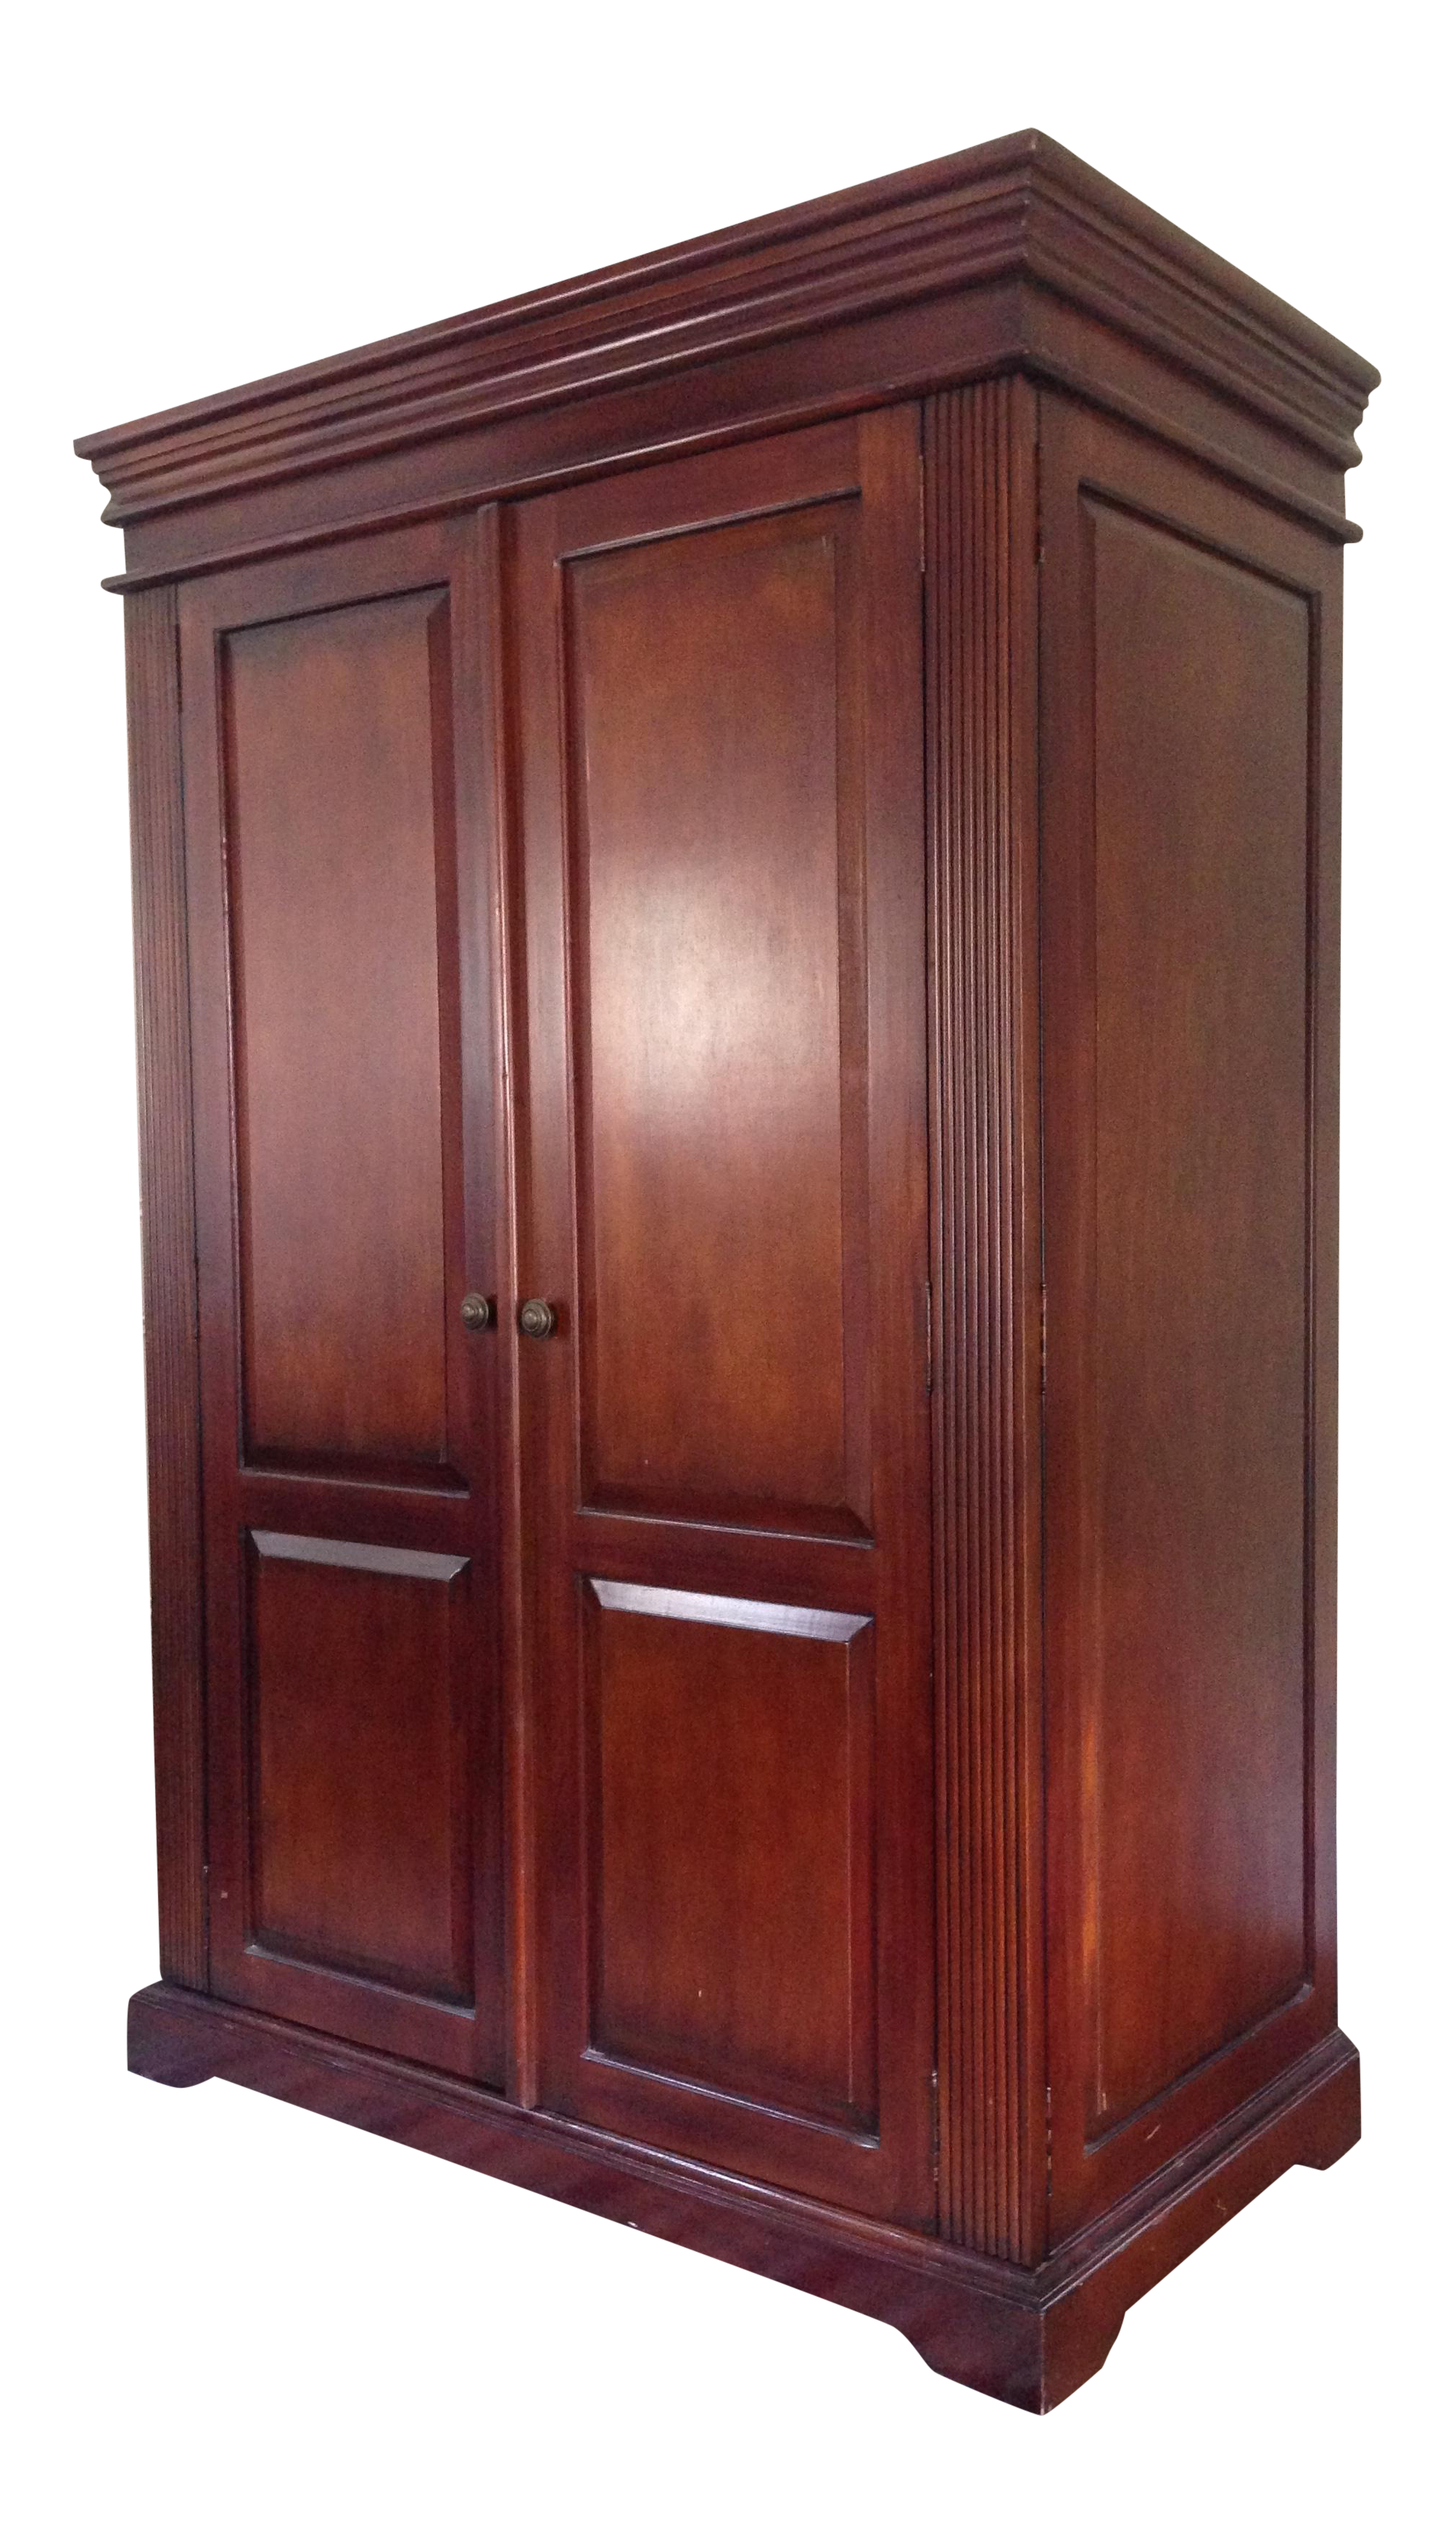 Classic Wood Armoire/Wardrobe on Chairish.com | Closet in 2019 ...